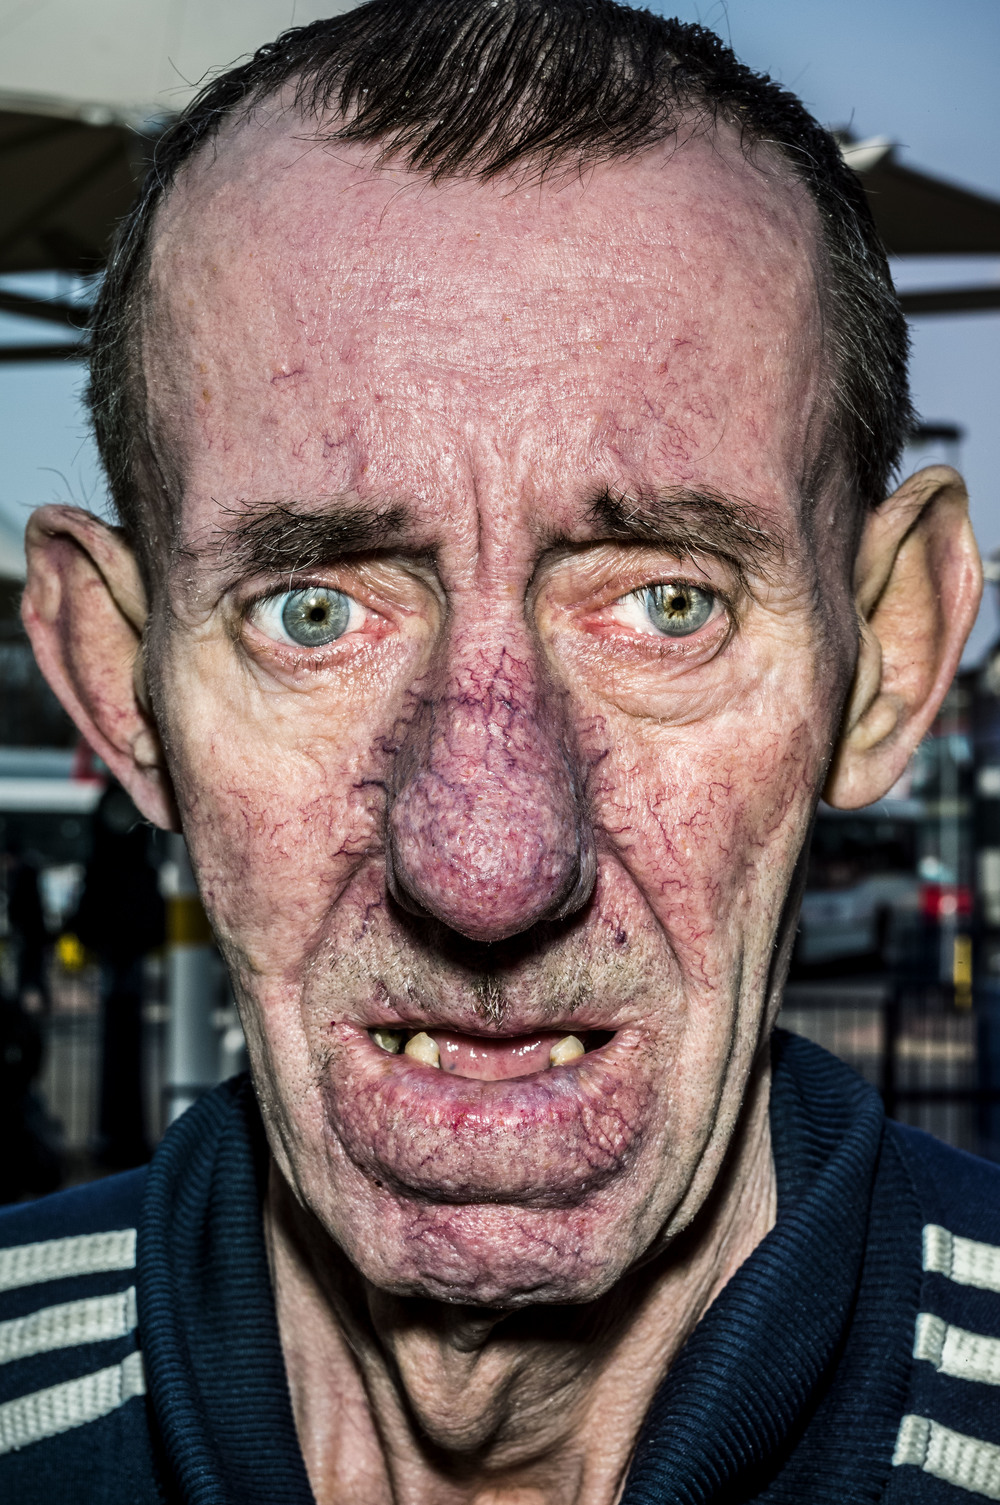 GB. West Bromwich. 2014. Peter at the bus station.